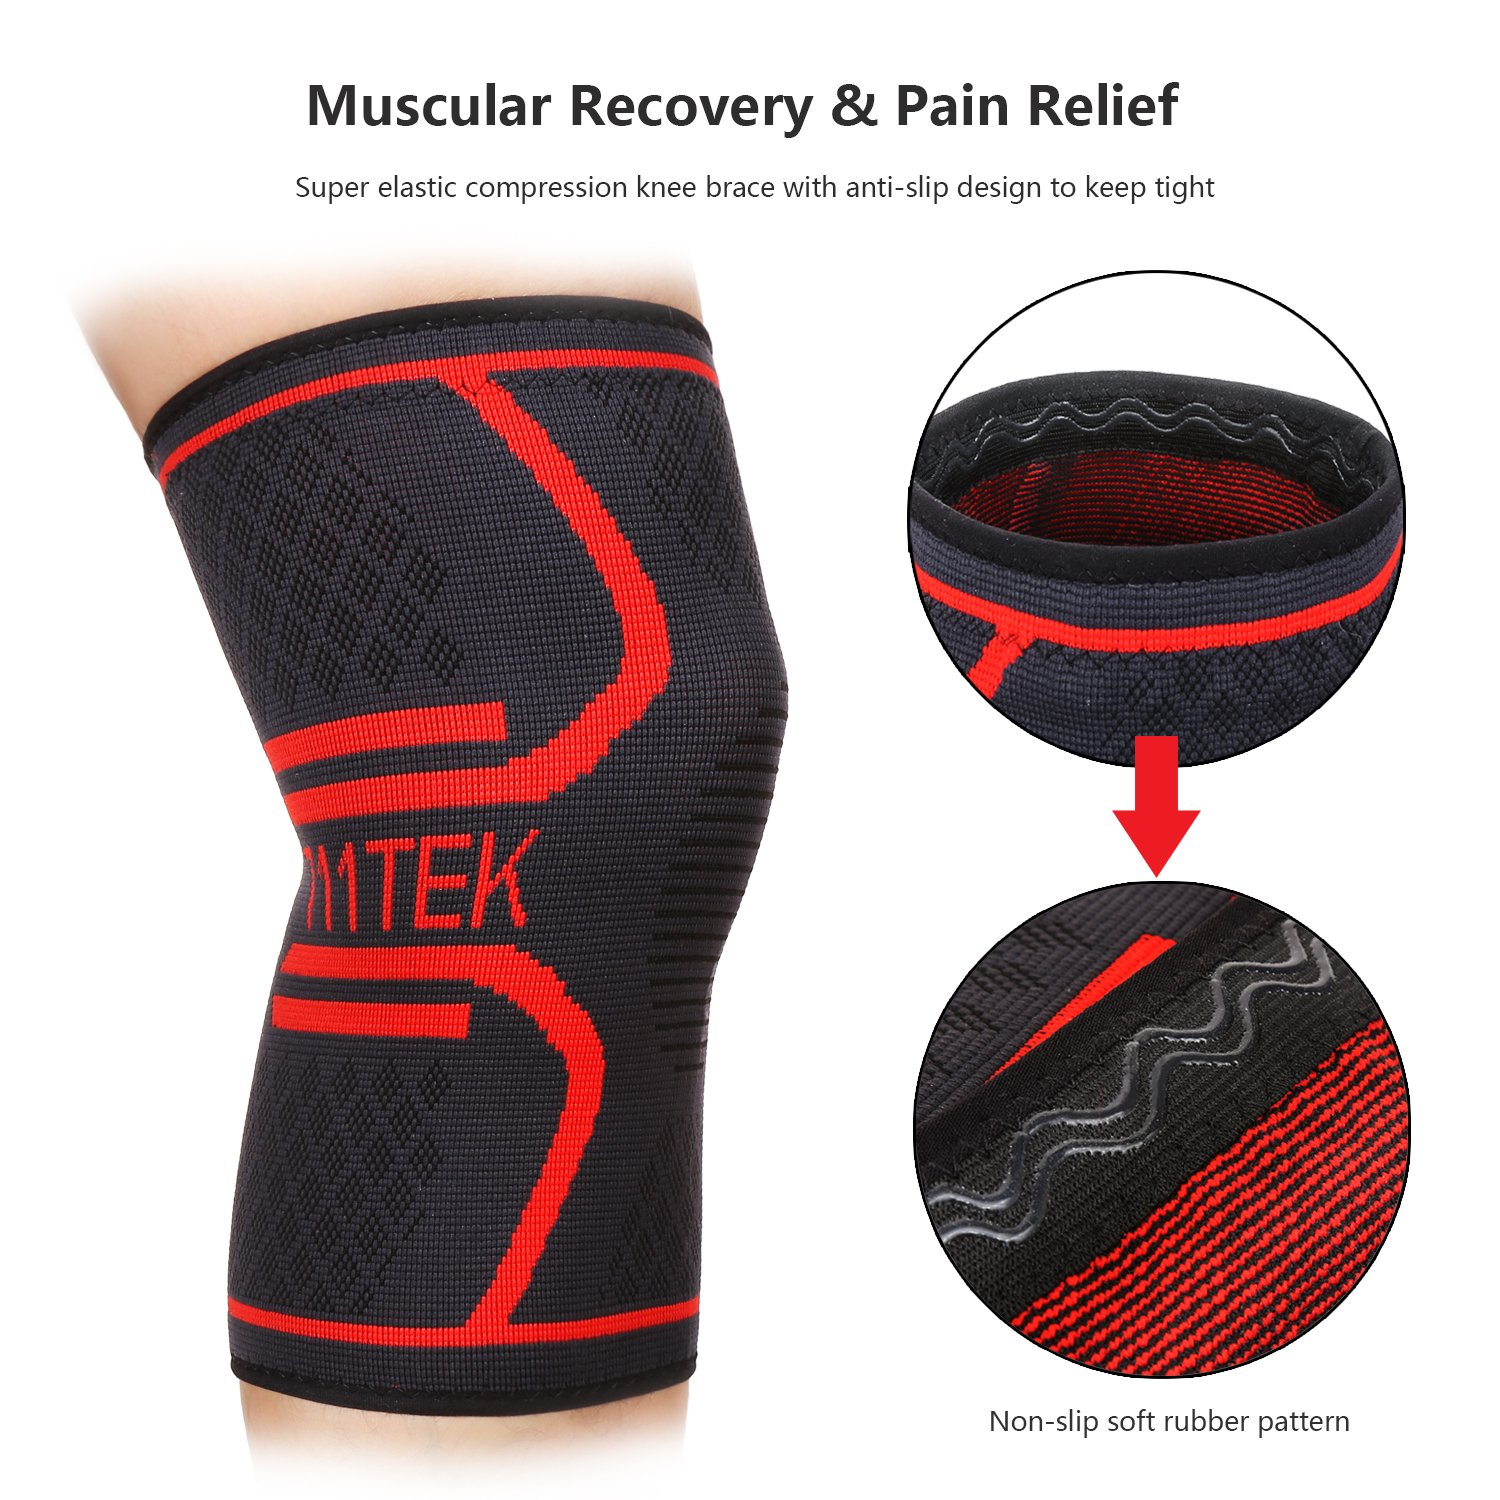 711TEK Knee Sleeve, Knee Brace Support Compression for Joint Pain and Arthritis Relief. For Men And Women - Wear Anywhere 2 Pack(M)